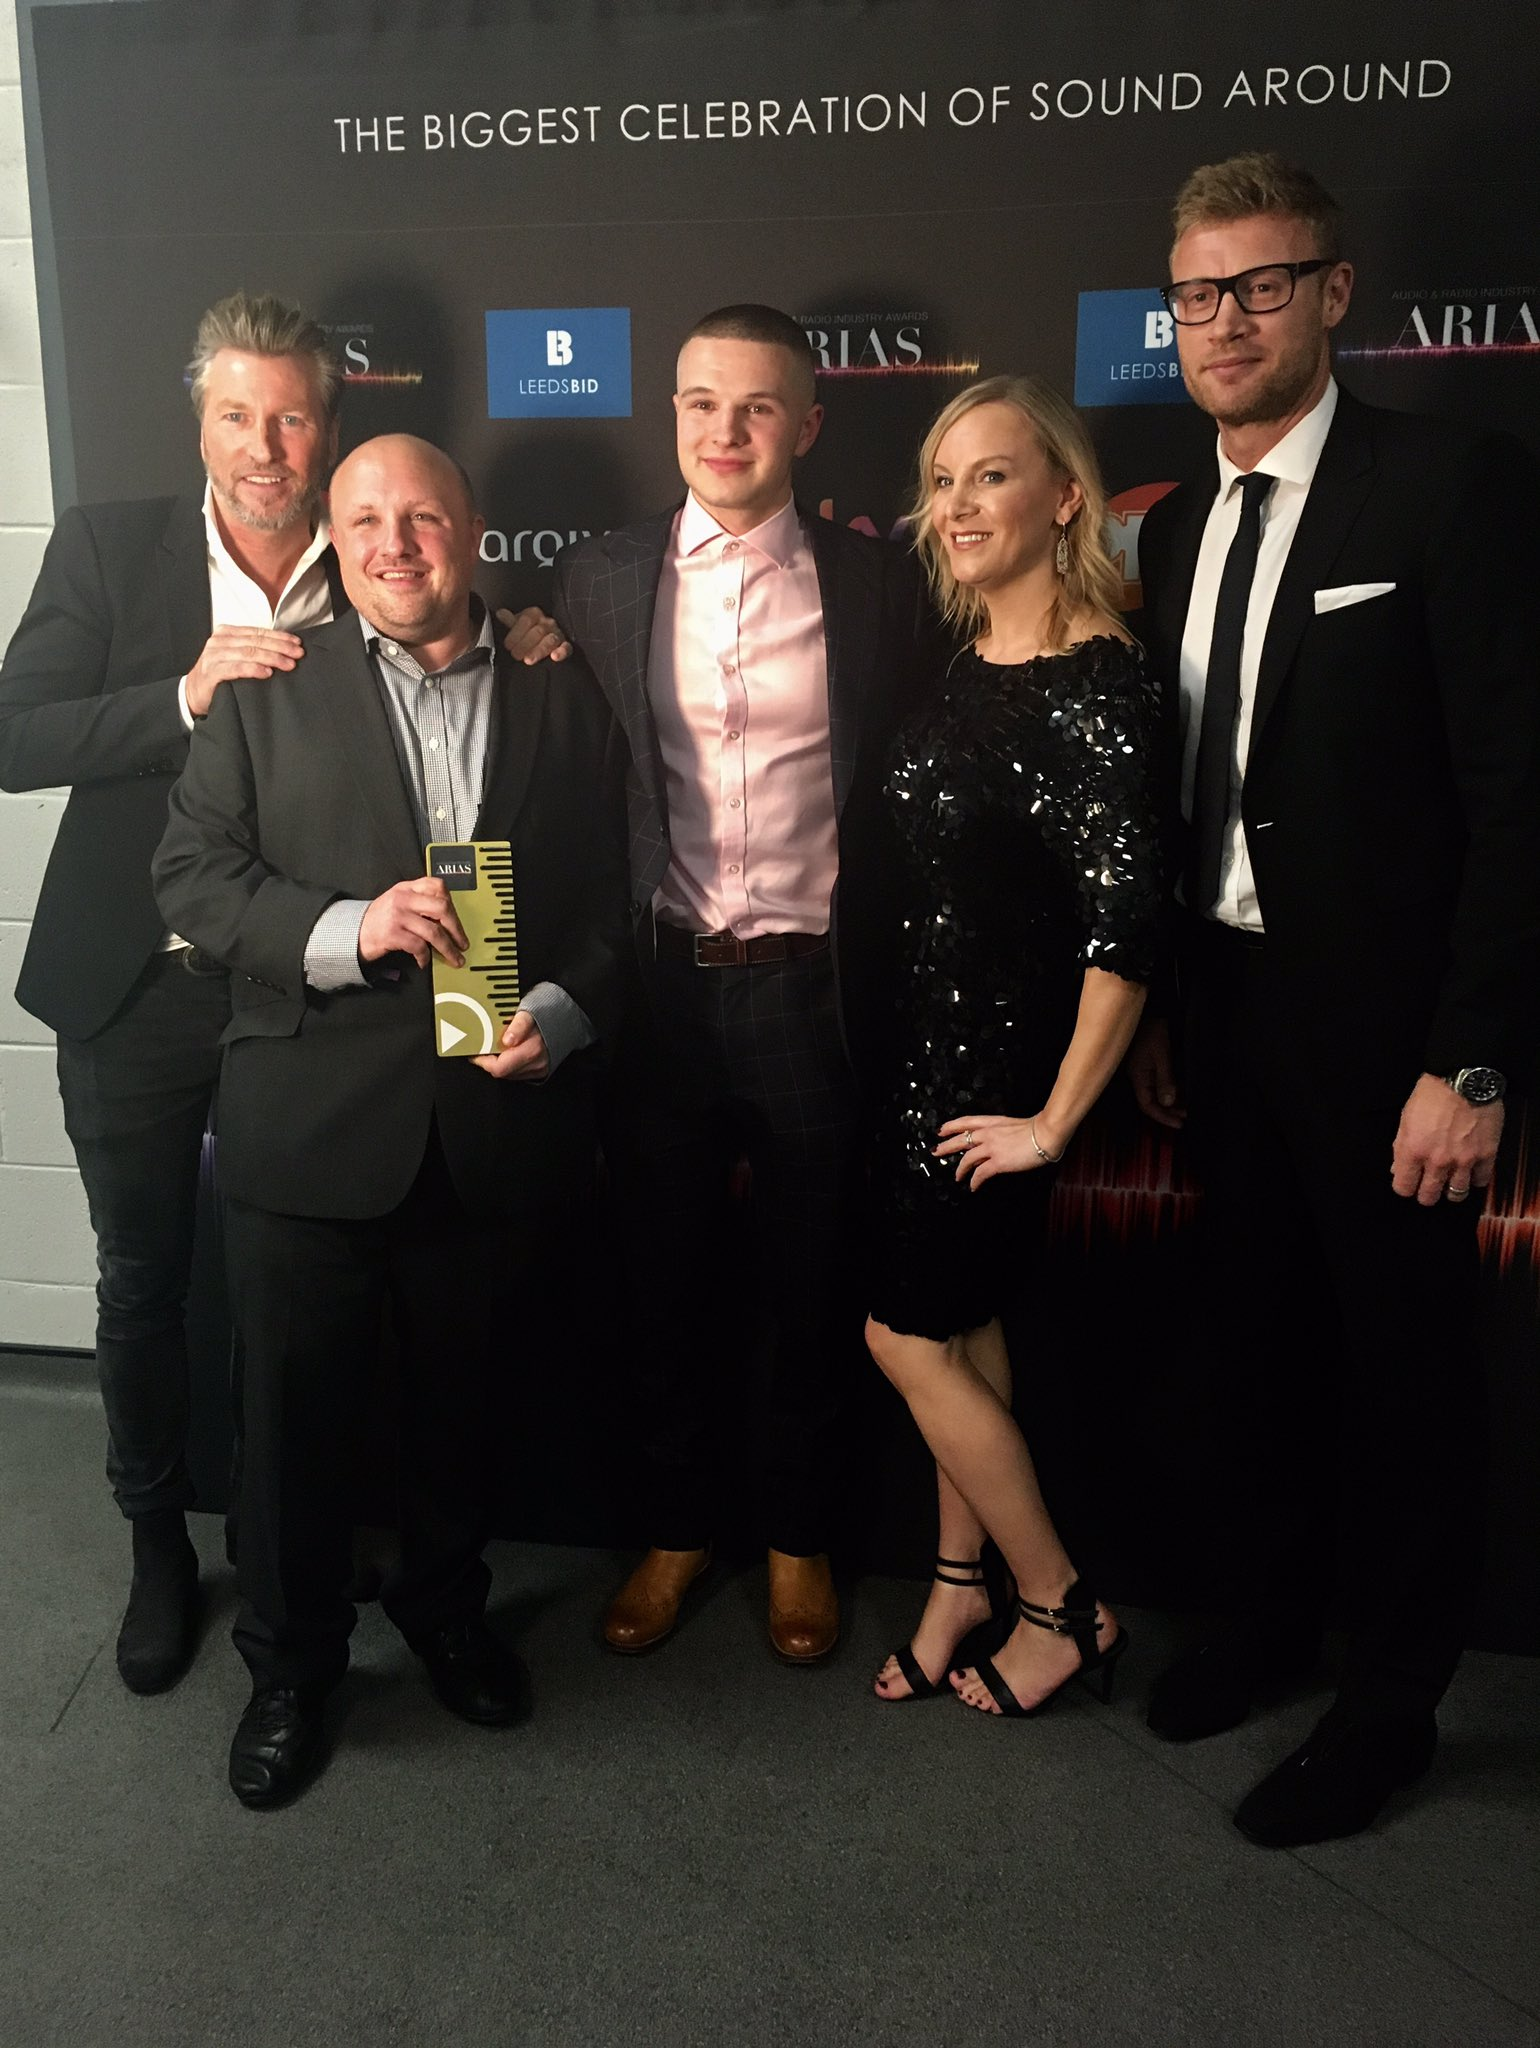 RT @radioacademy: ..and another one! Well deserved @bbc5live @flintoff11 @RobbieSavage8 https://t.co/iLxxMpZVEu